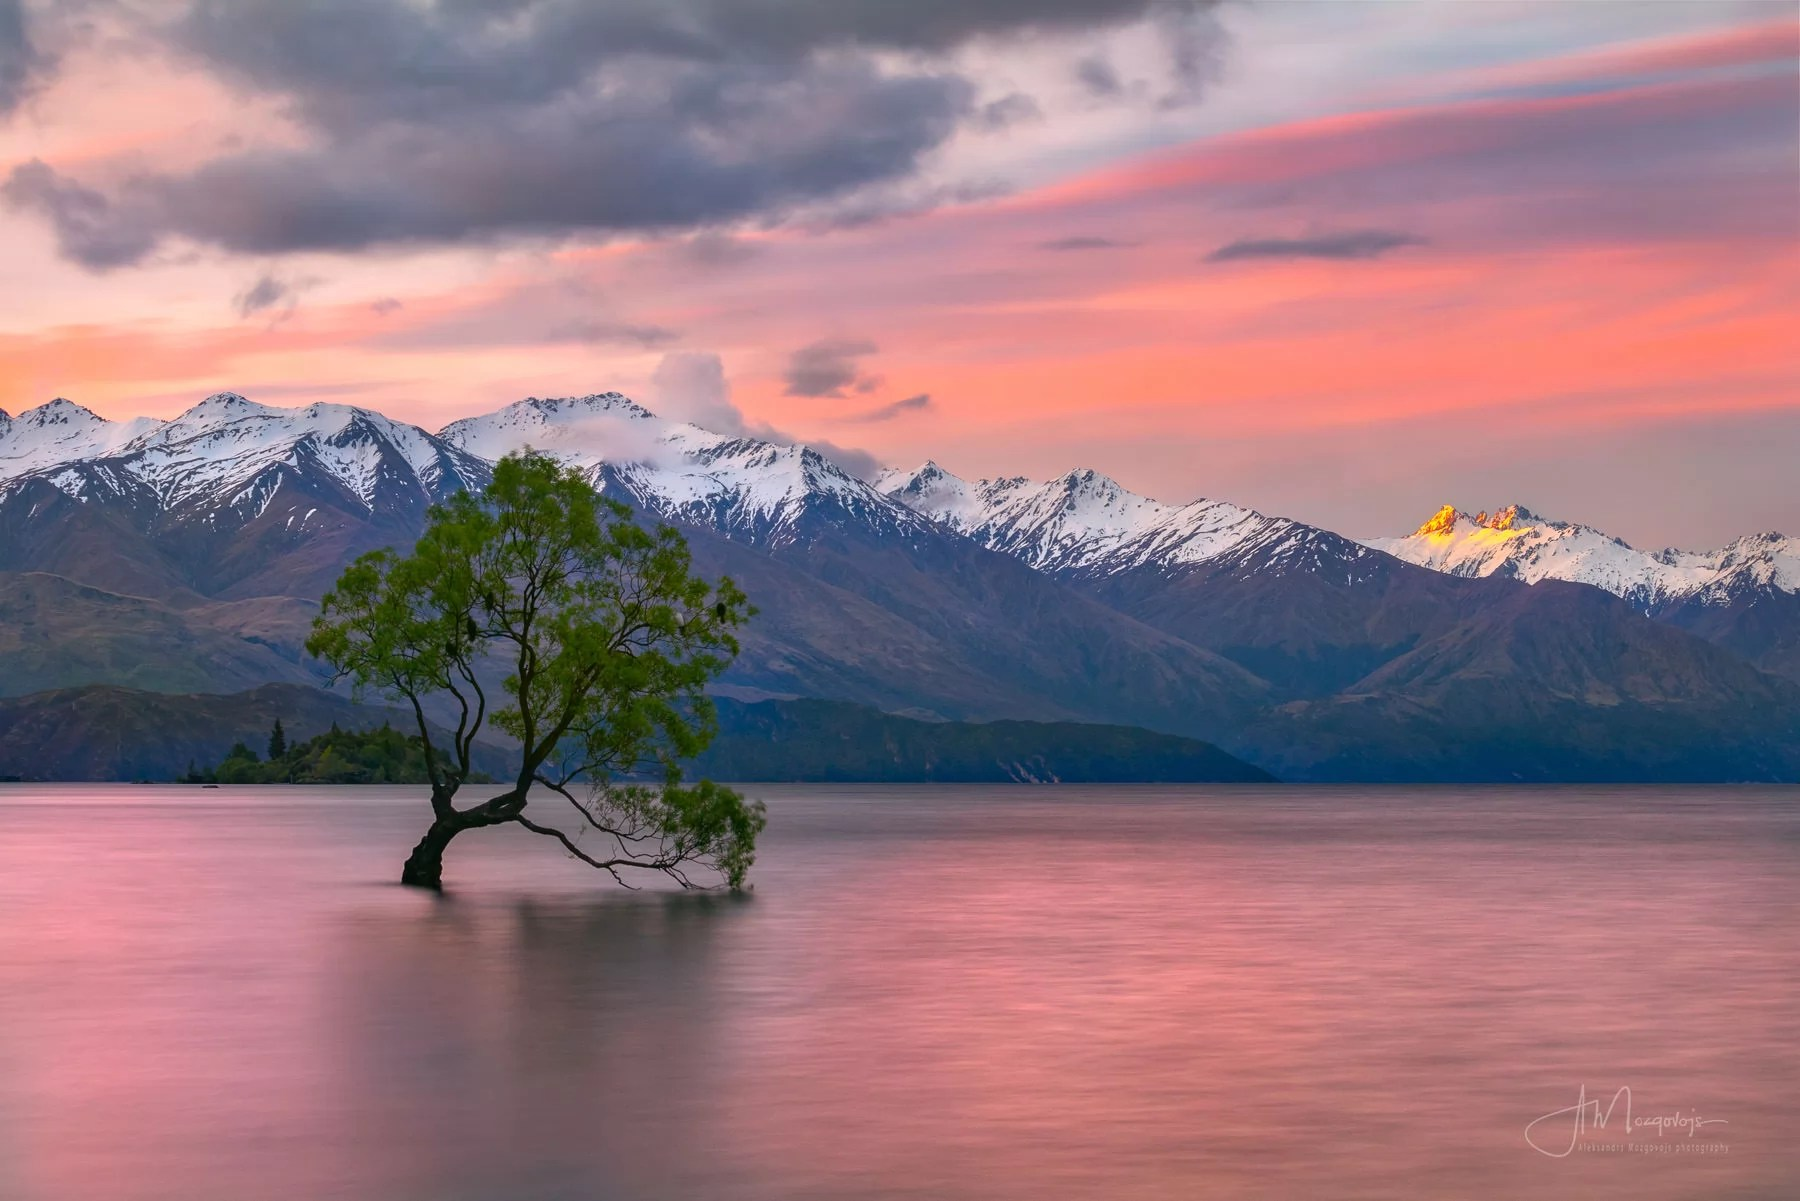 Wanaka Tree at sunset, New Zealand